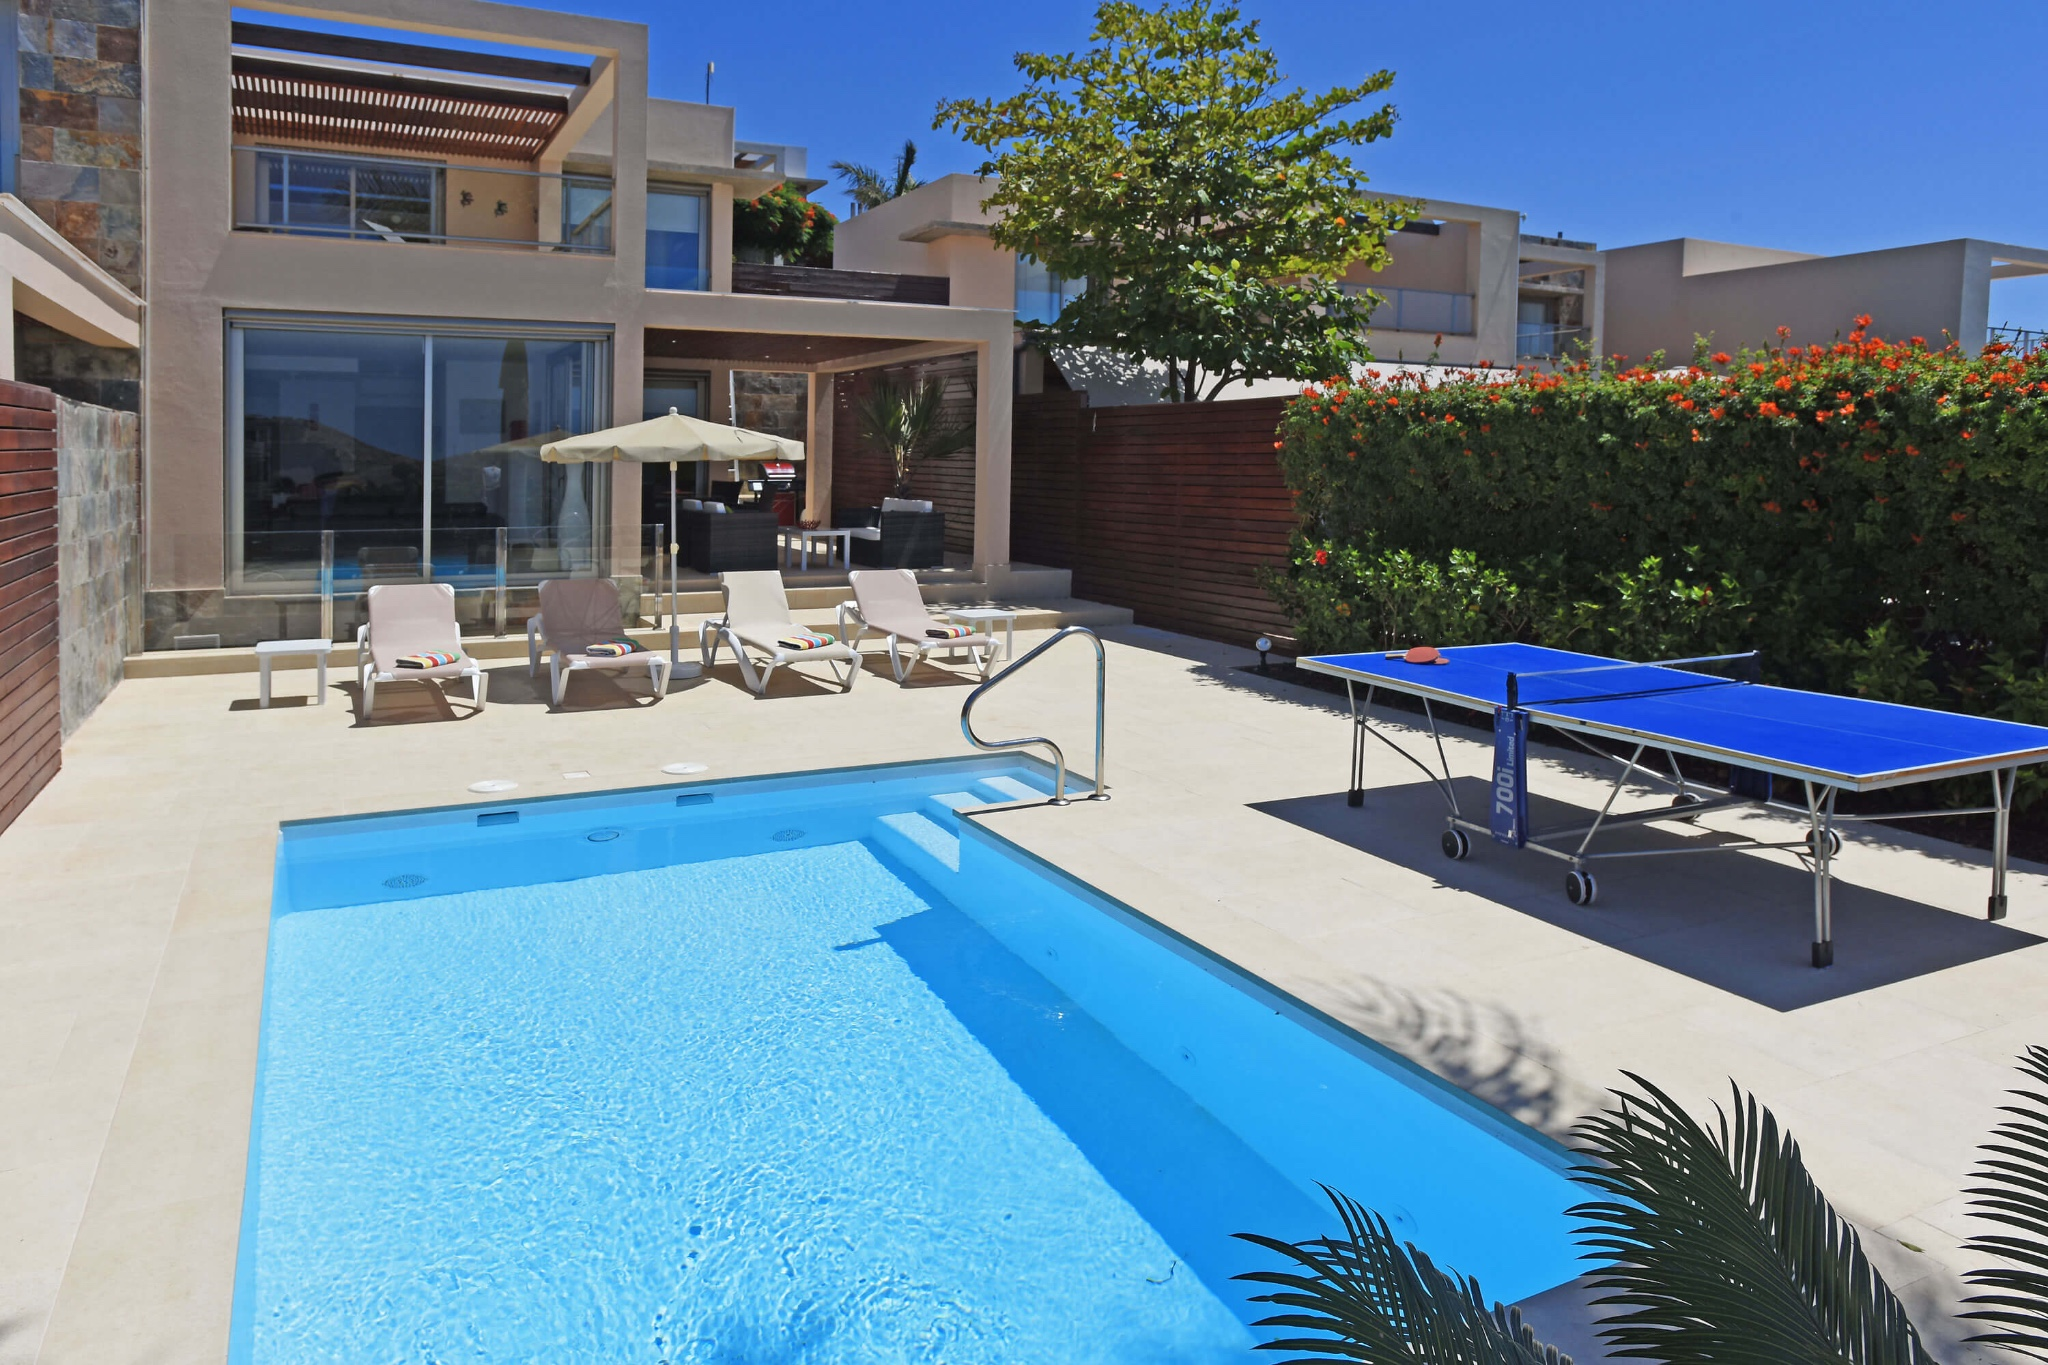 Modern two-storey villa with pleasant outdoor areas with seating area, sun loungers, table tennis and private pool